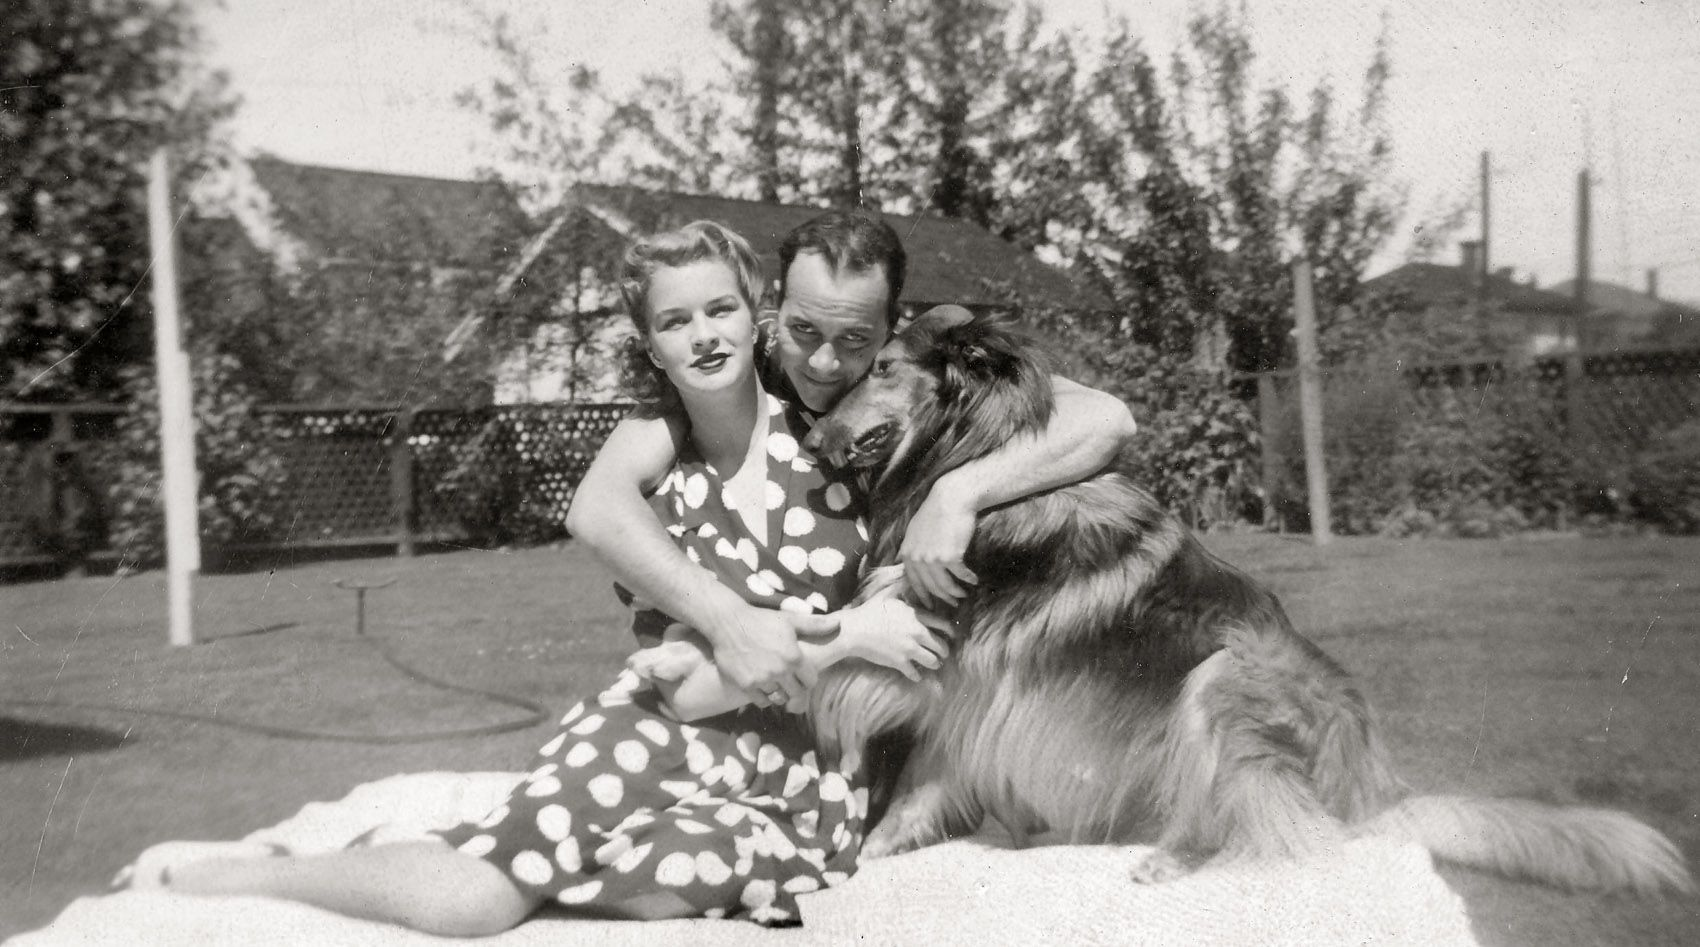 Vancouver, BC. 1940. Mr. & Mrs. I'Anson with King Tut